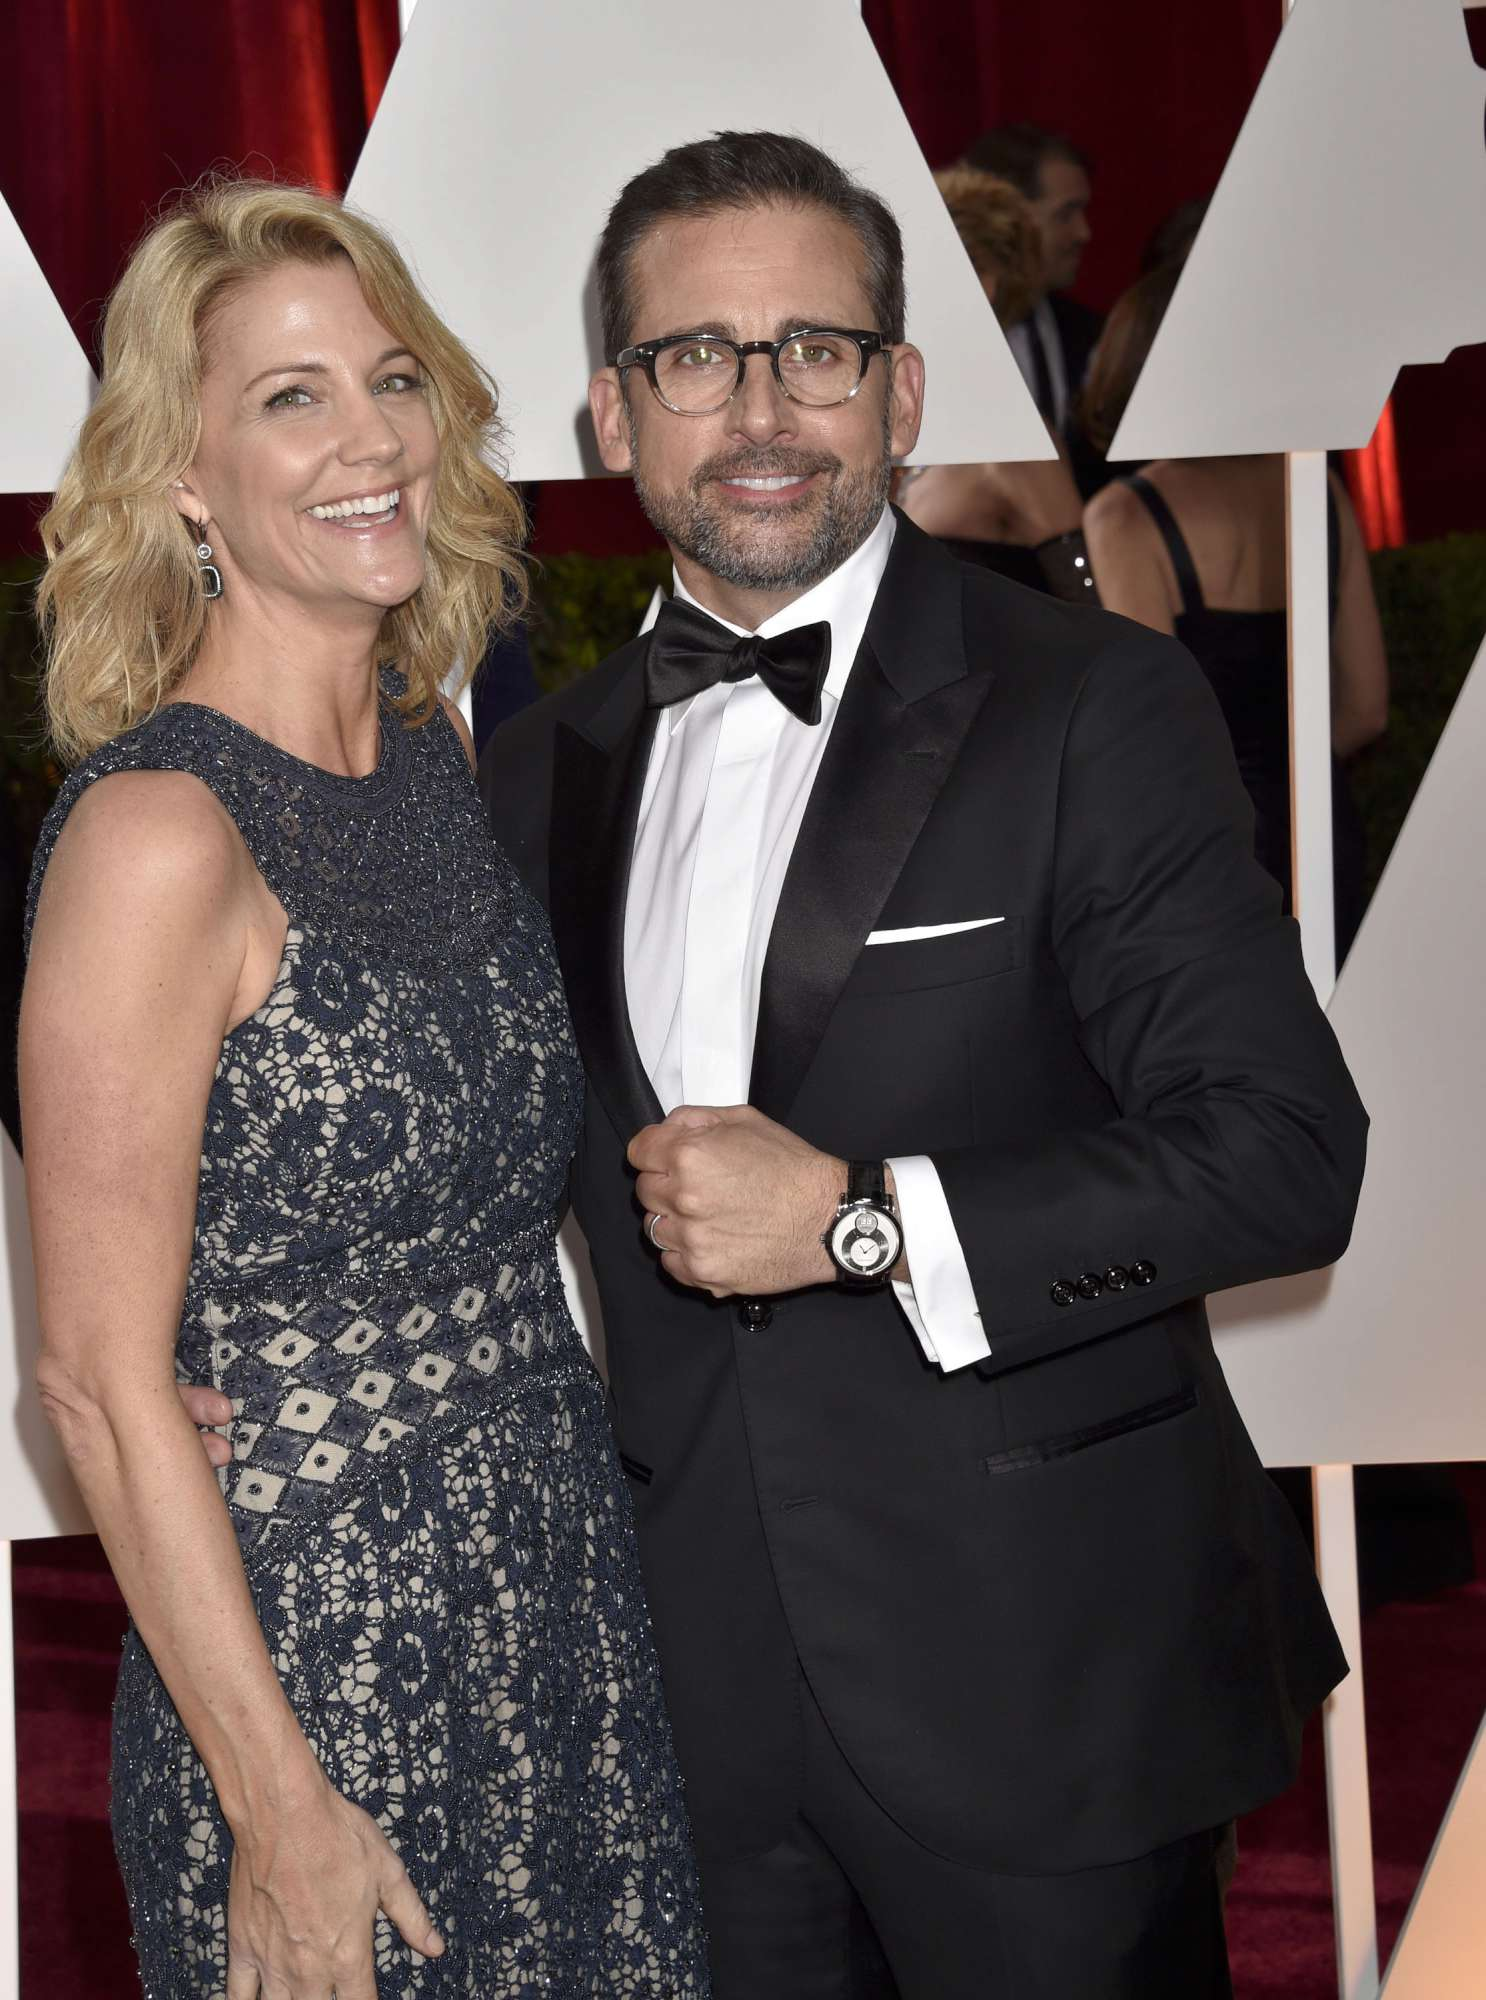 Actor Steve Carell attends the 87th Annual Academy Awards.  Photo by Jennifer Graylock, courtesy of Harry Winston (exp. 22 August 2015)